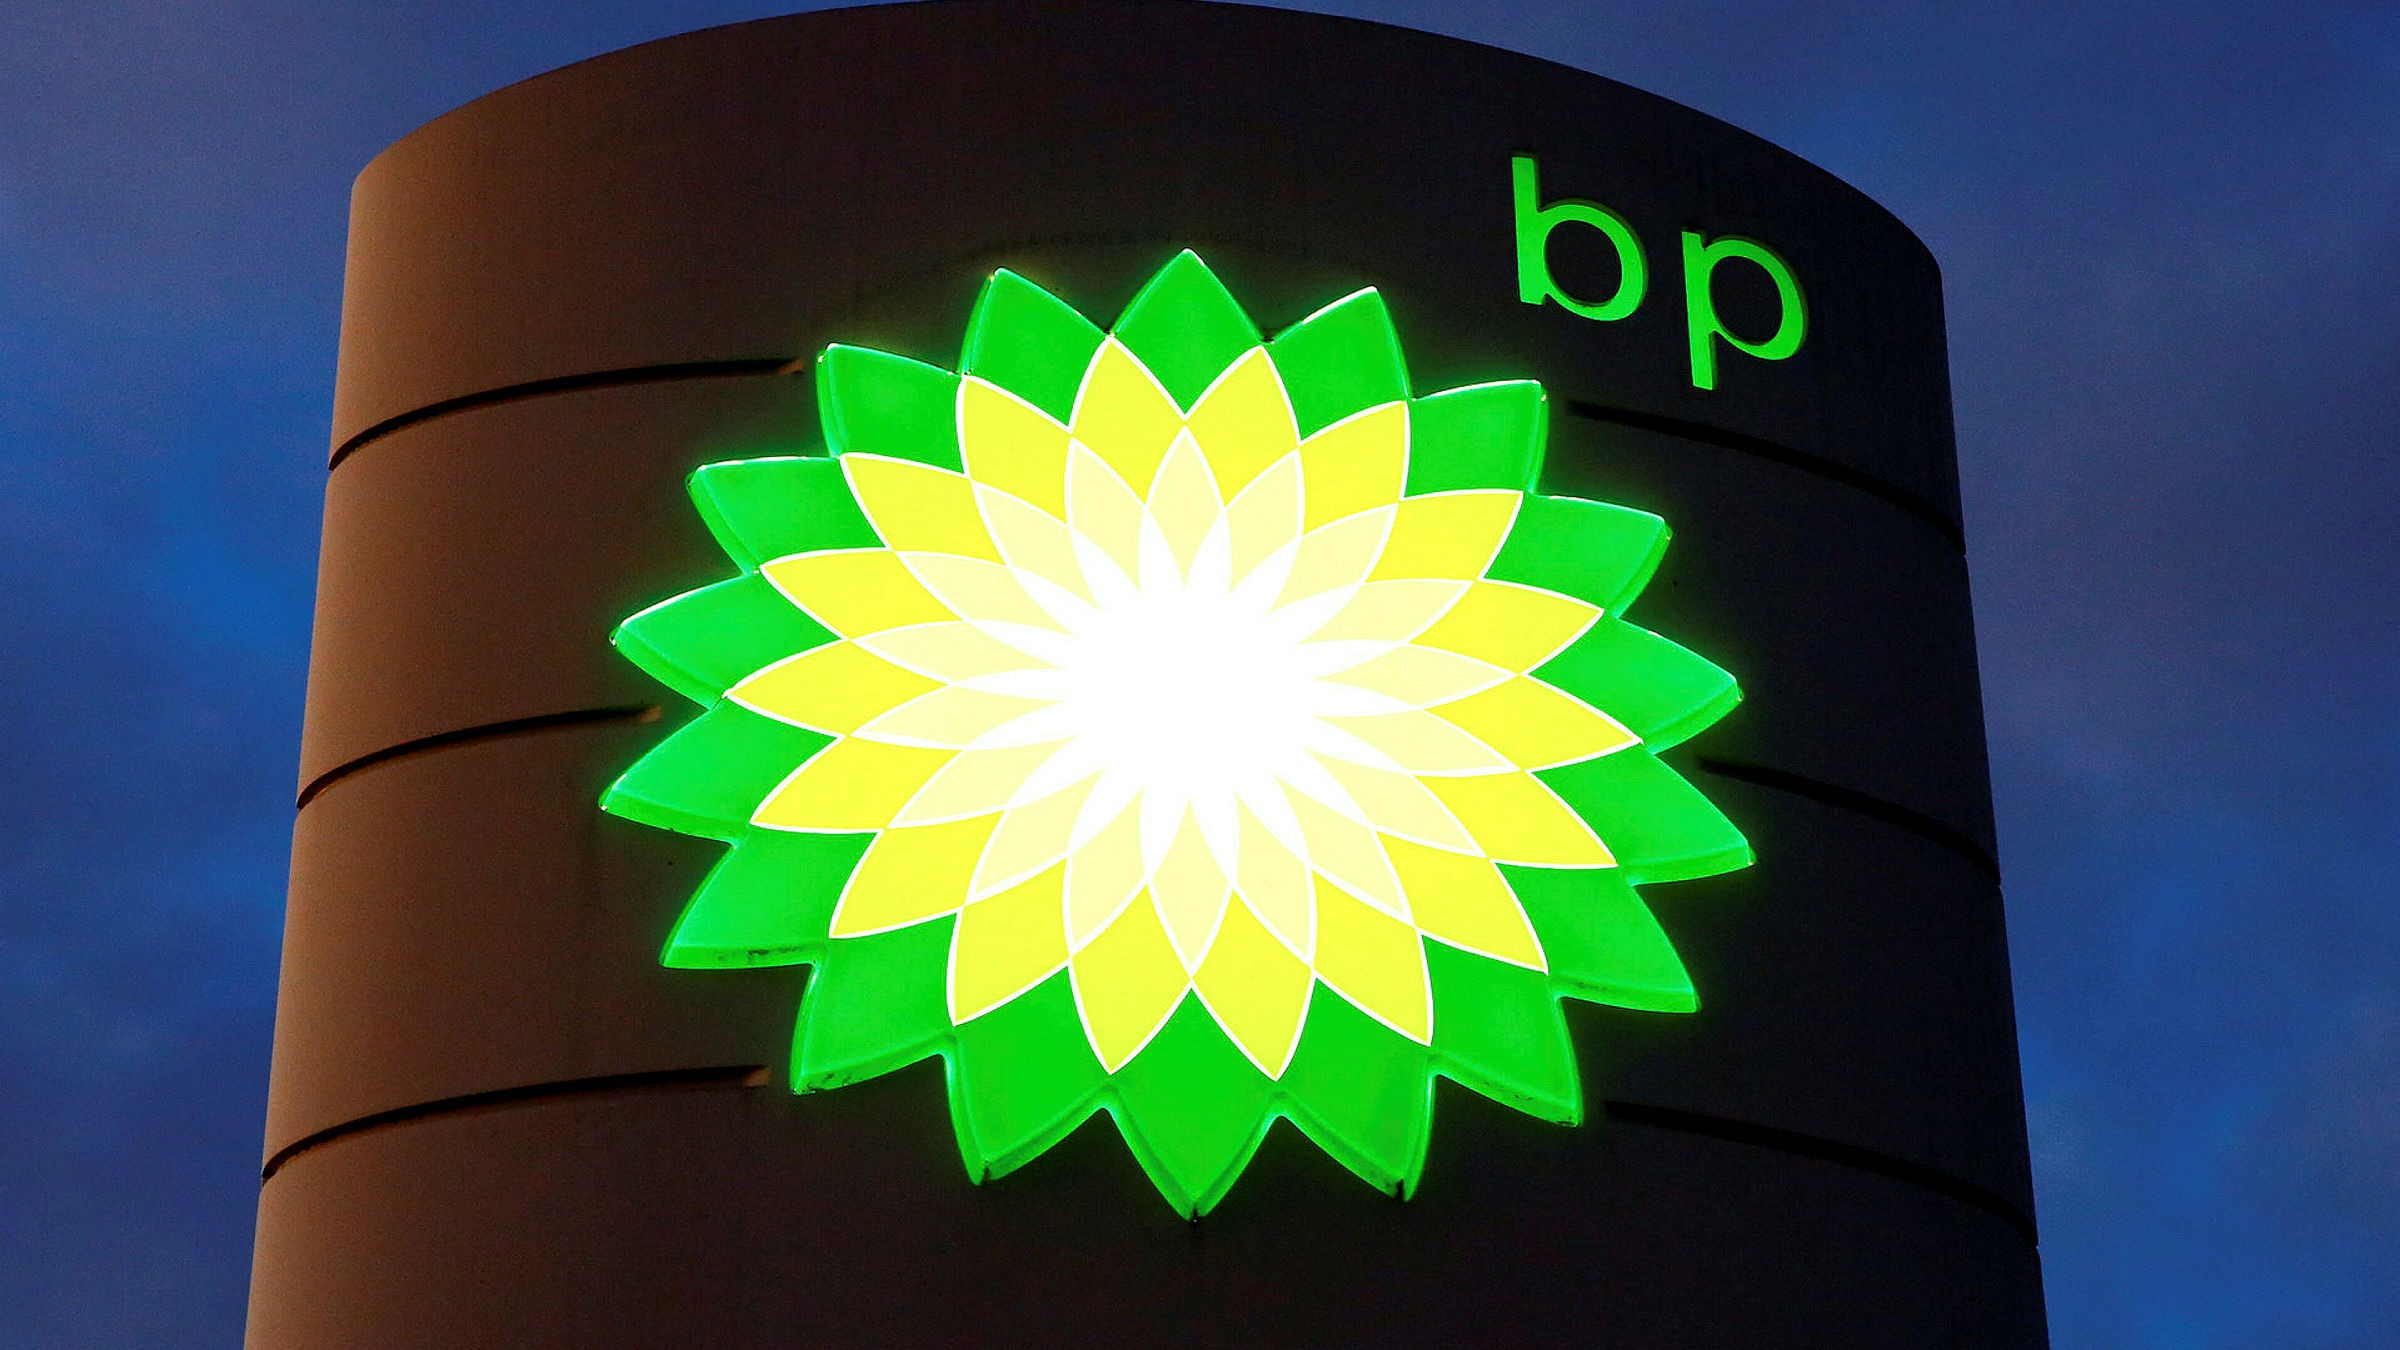 BP said over the next decade it aims to increase its annual low carbon investment 10-fold